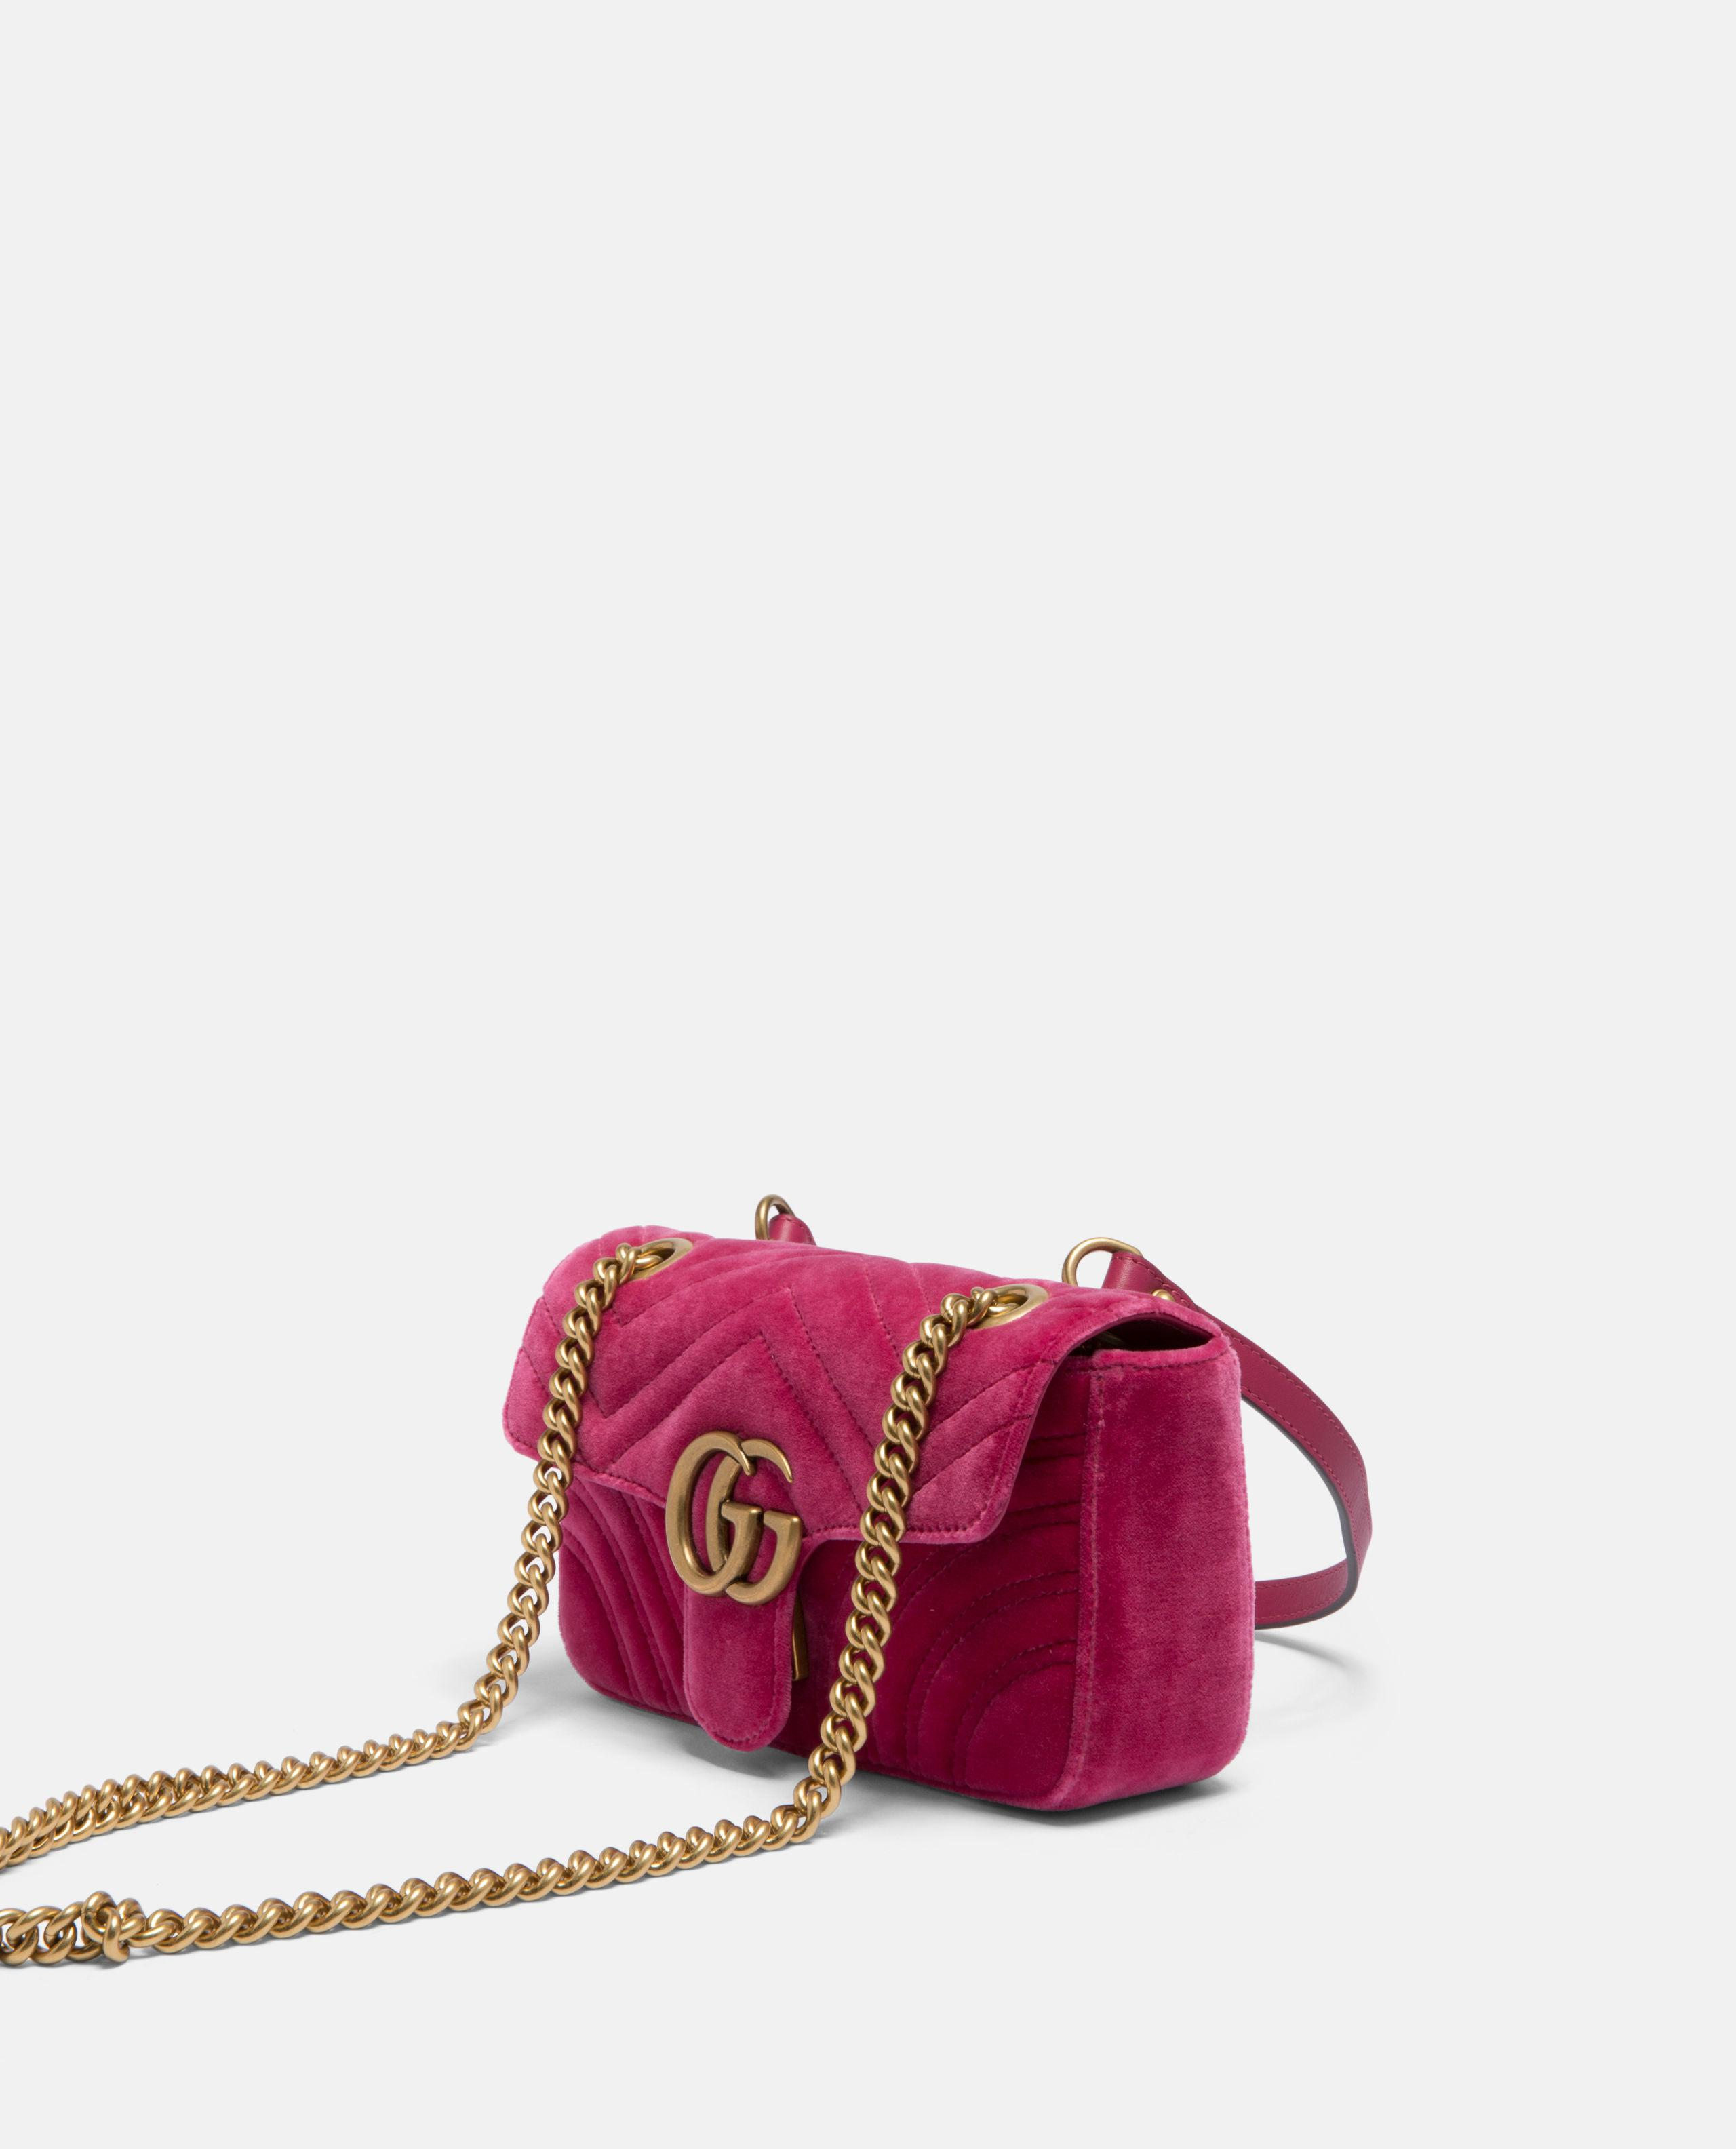 43cb607bee889b Gucci Mini GG Marmont Bag in Pink - Lyst